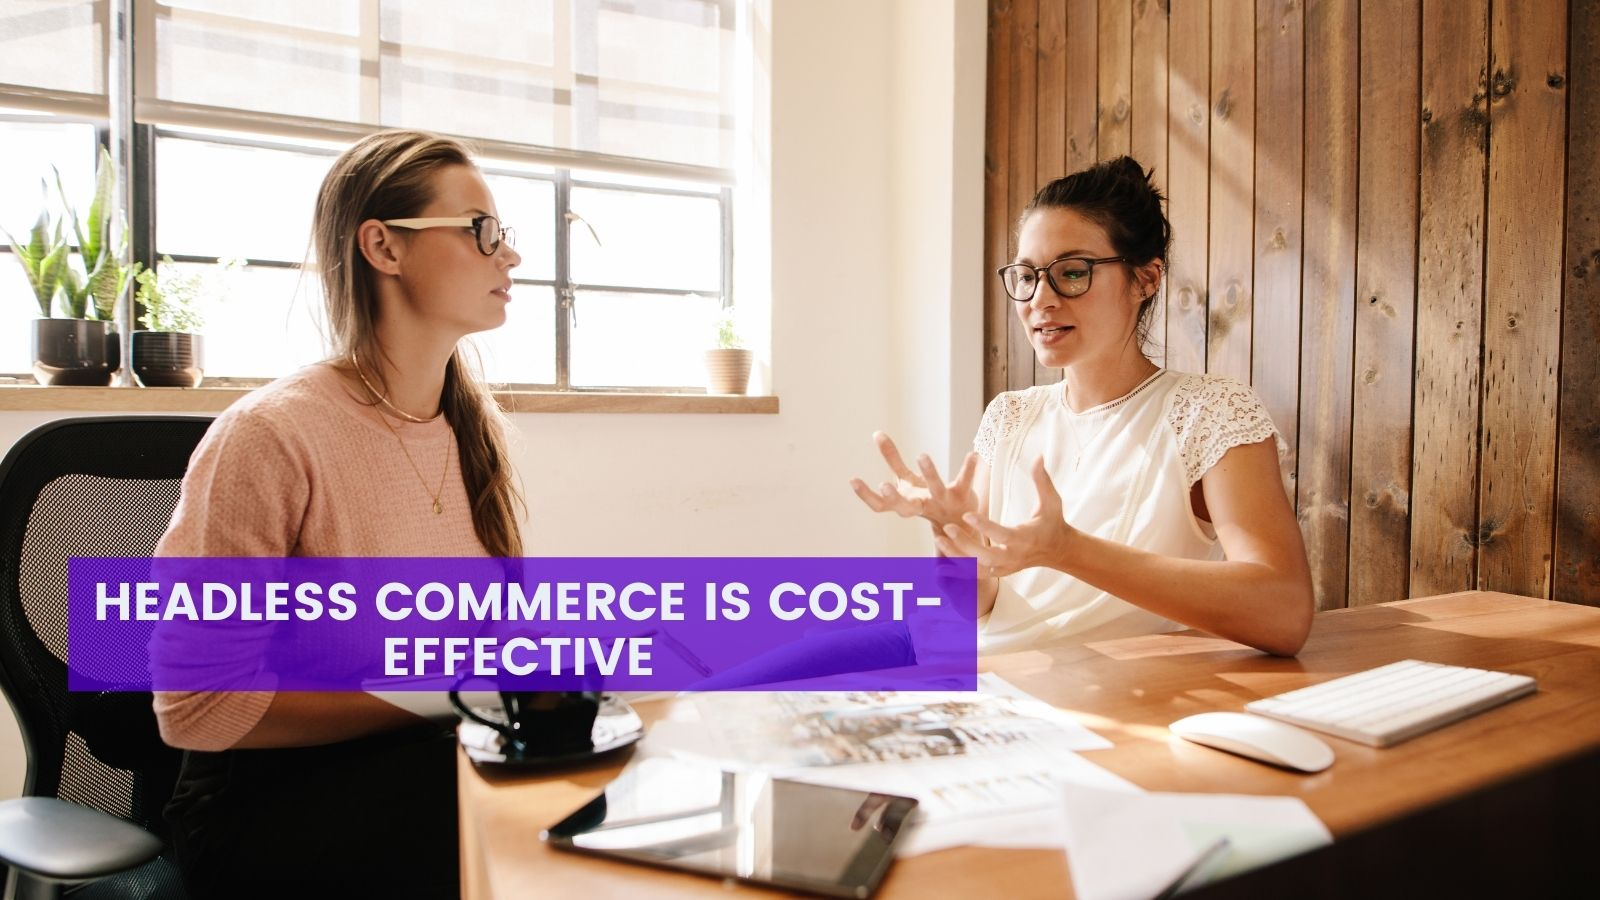 Headless commerce is cost-effective with agilitycms.com